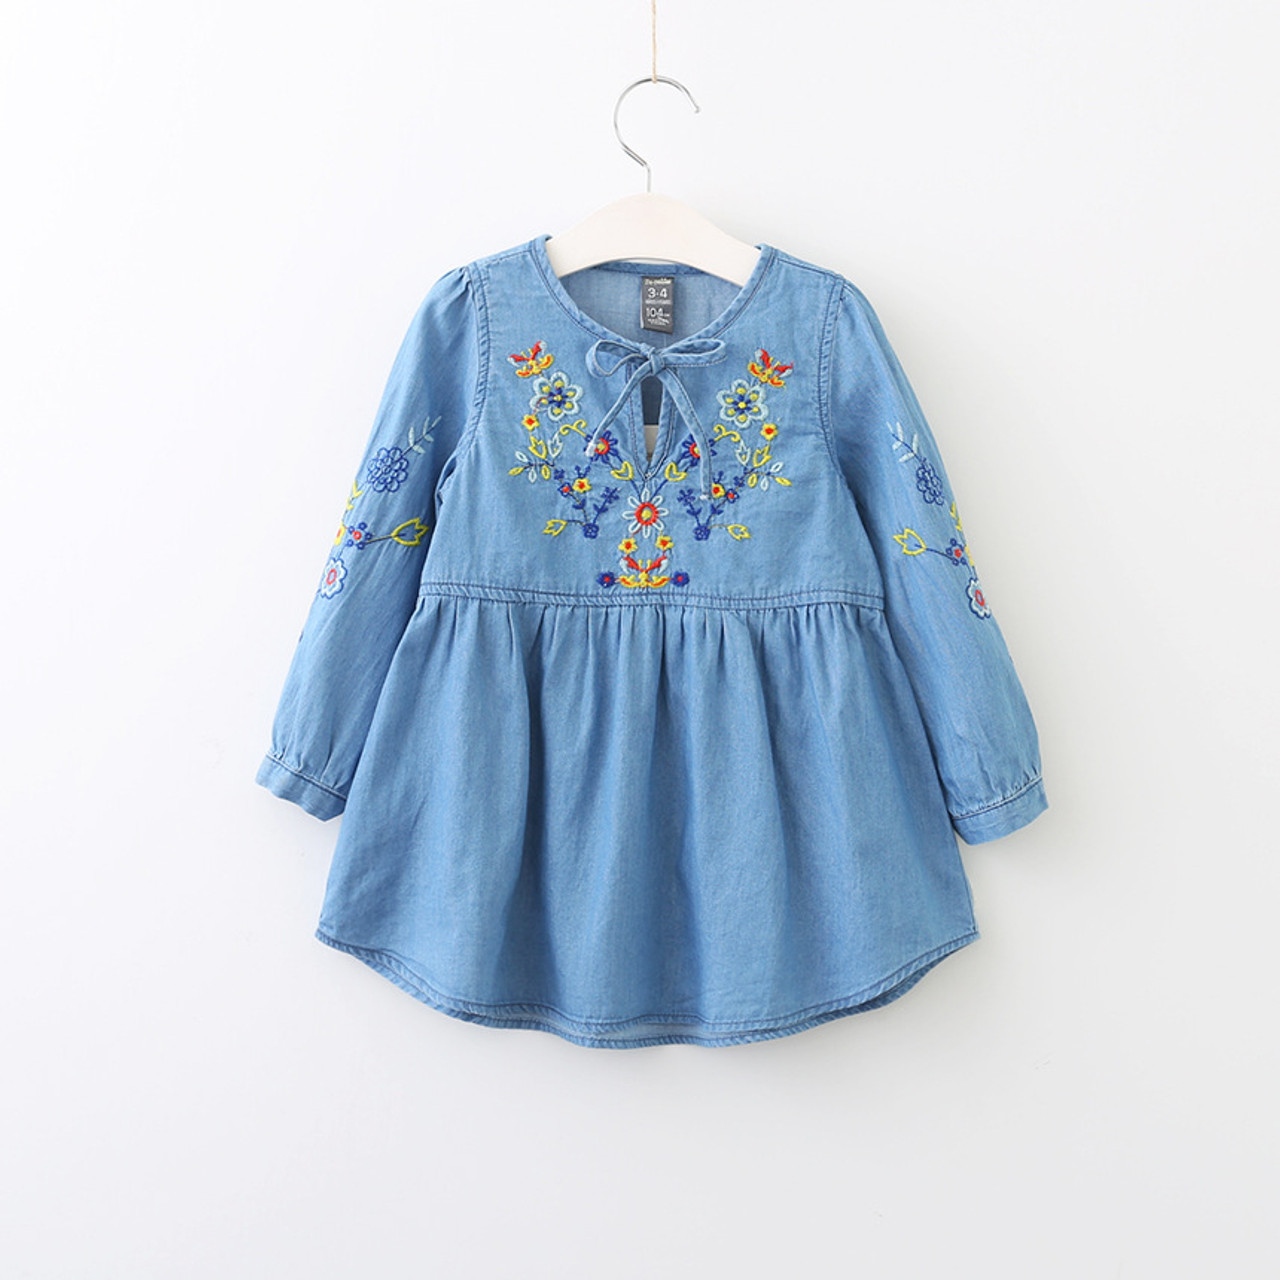 80236bab8 Autumn Cotton Denim dress Little Girls floral dress vintage ...